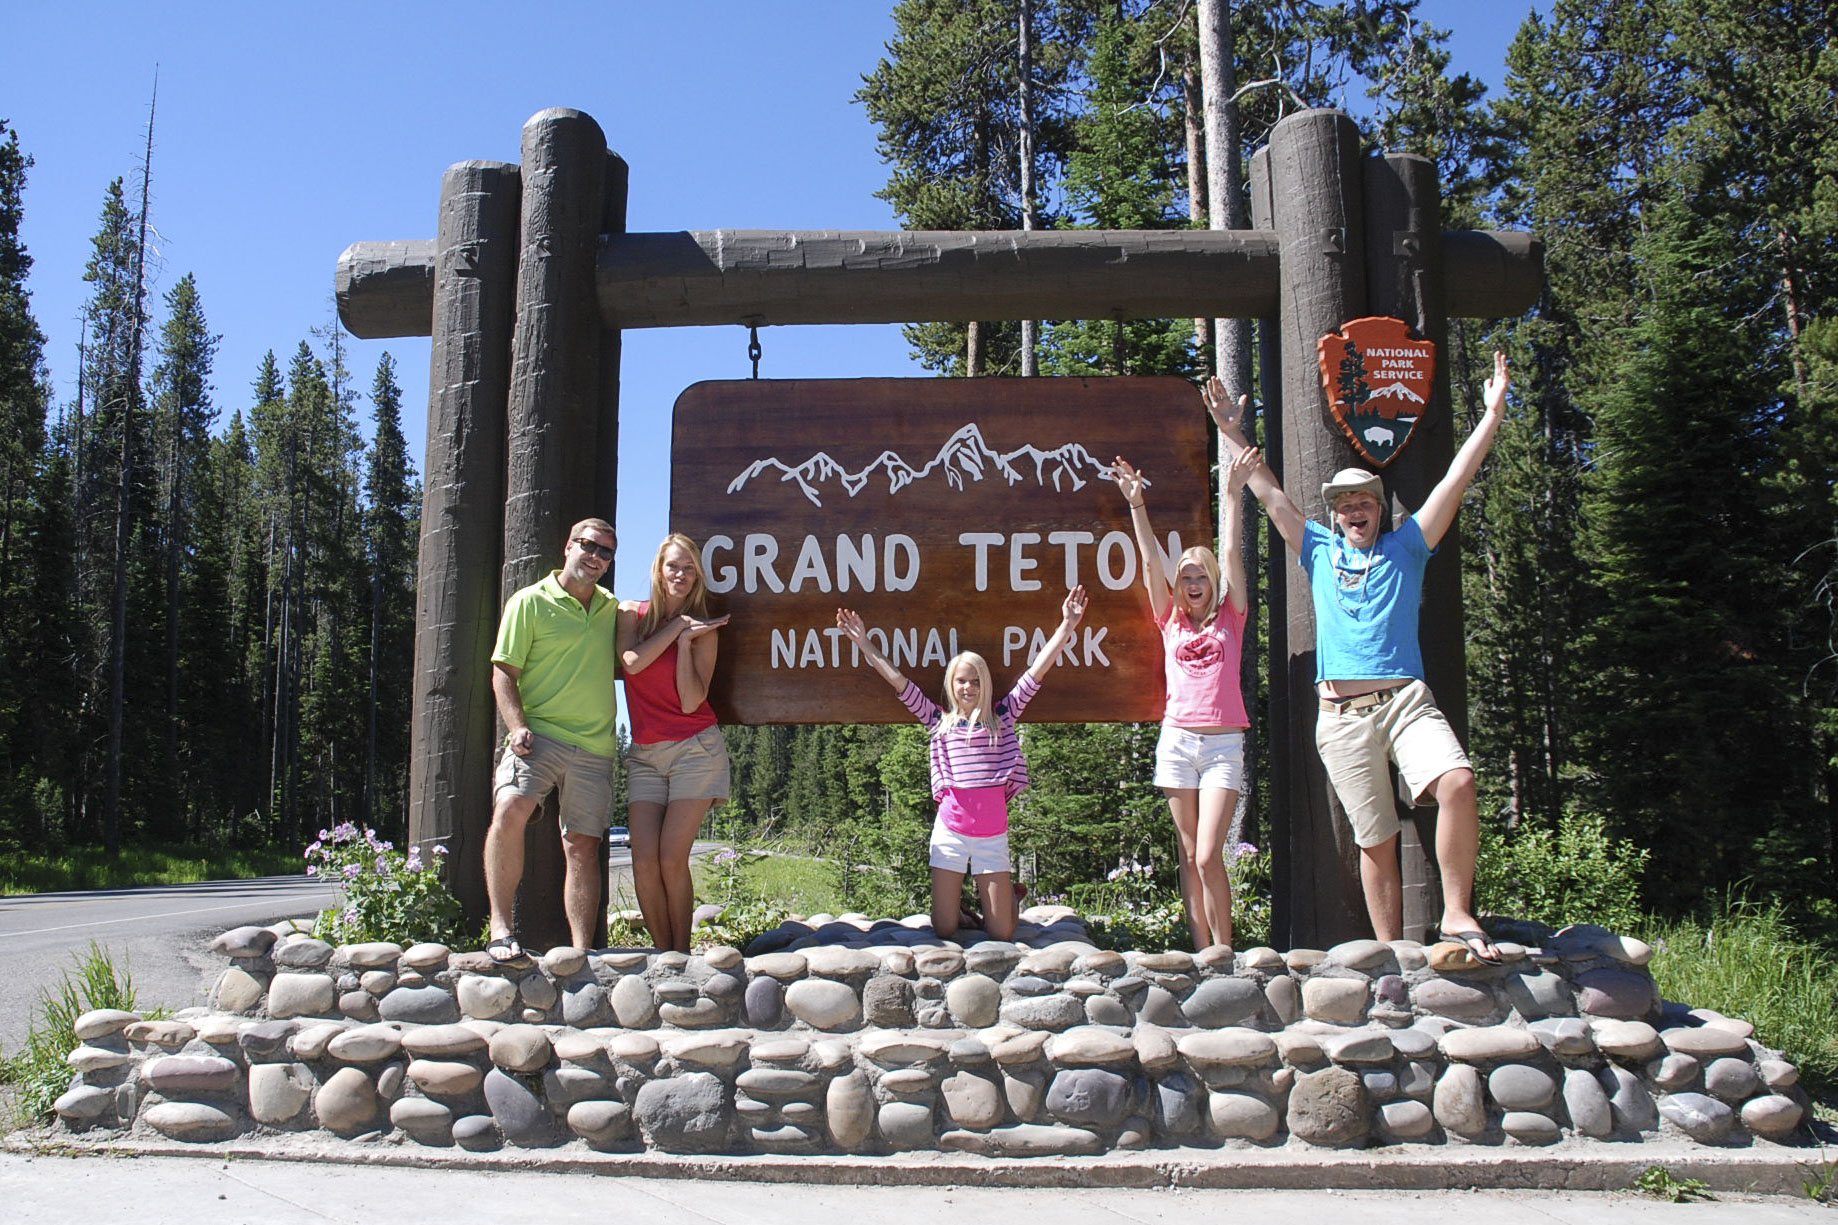 Teton welcome sign-a